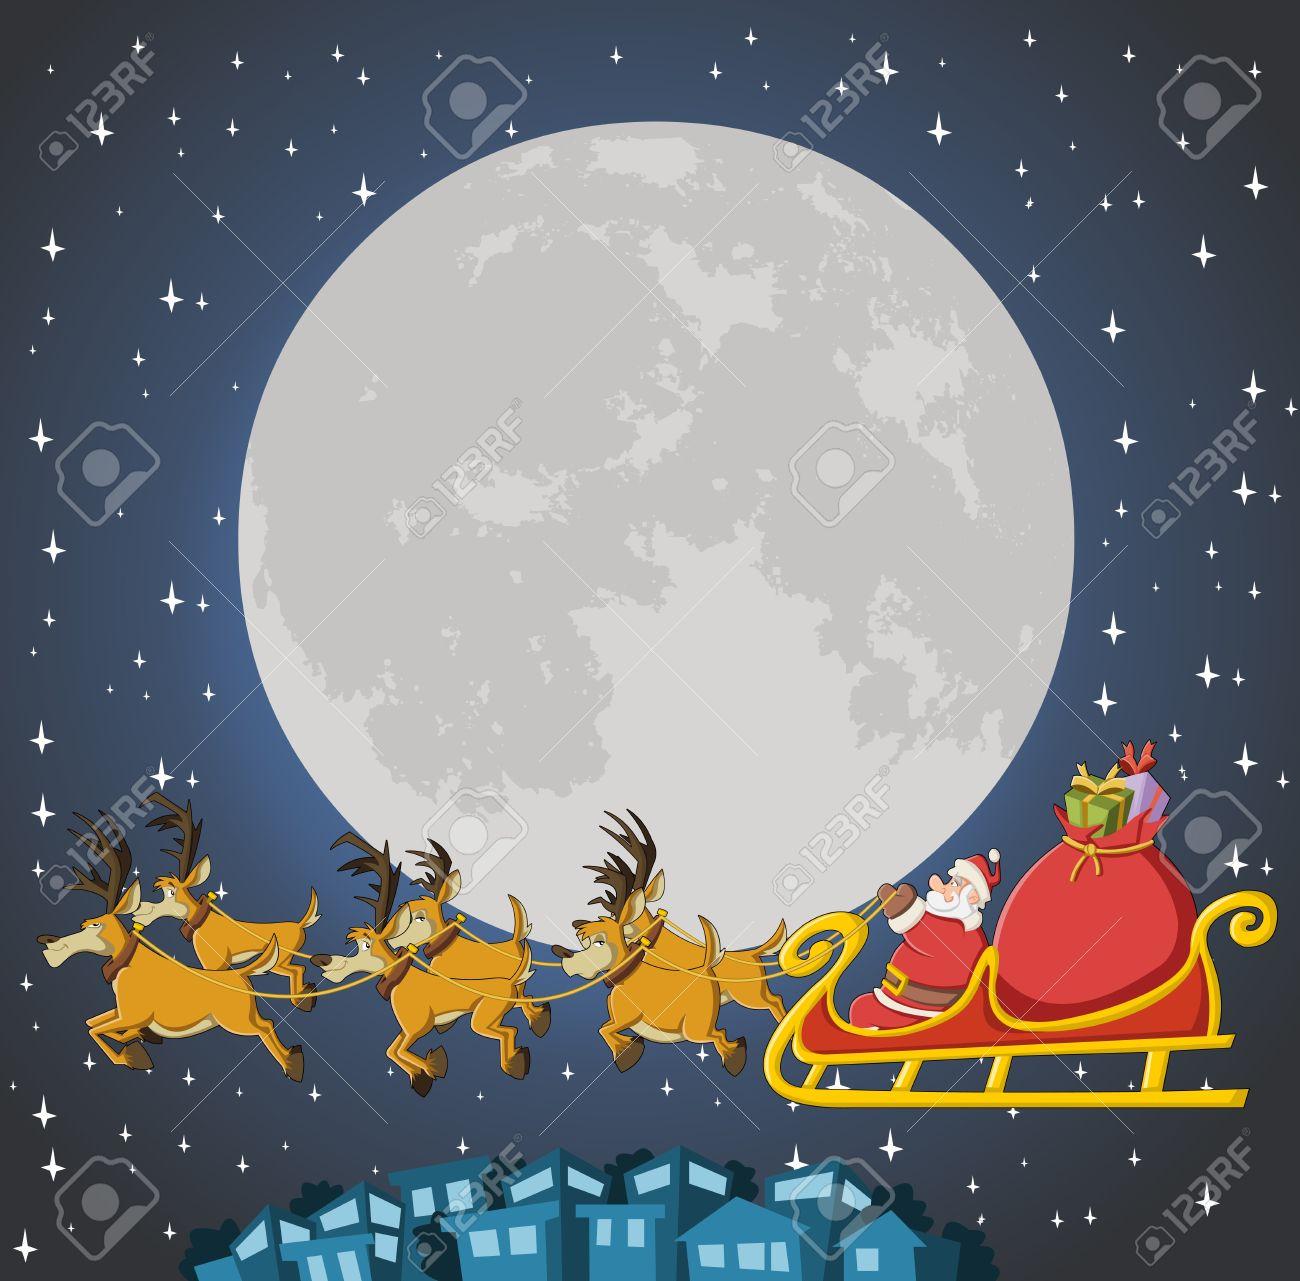 Santa Claus on sleigh with reindeer flying on christmas night with big moon Stock Vector - 16552363